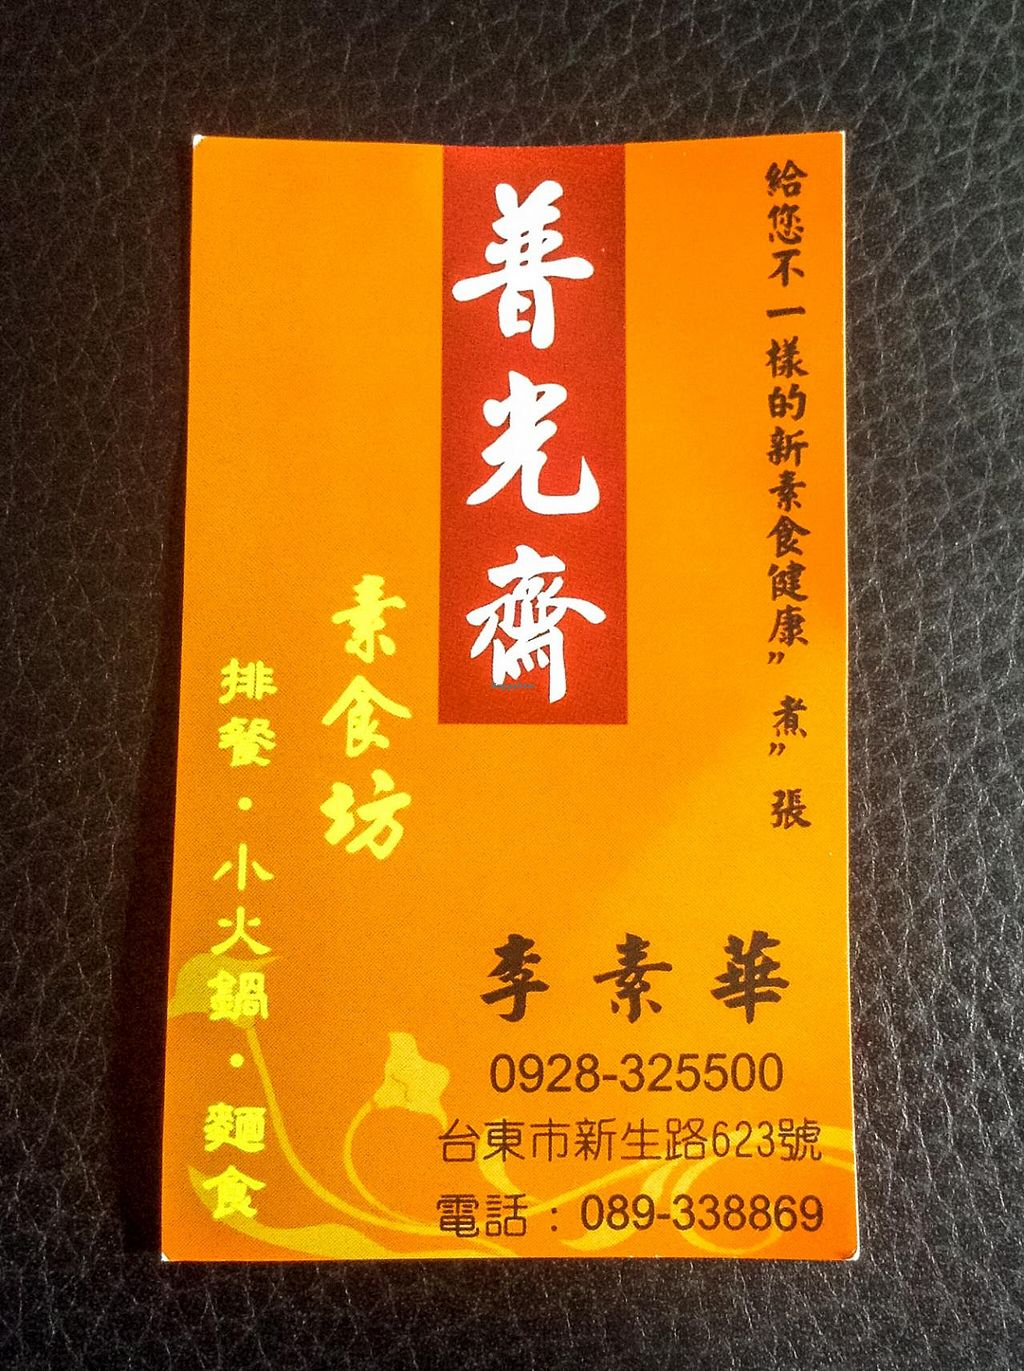 """Photo of Pu Kwon Vegetarian  by <a href=""""/members/profile/AnthonyPolicano"""">AnthonyPolicano</a> <br/>business card with contact info <br/> December 31, 2014  - <a href='/contact/abuse/image/53393/89086'>Report</a>"""